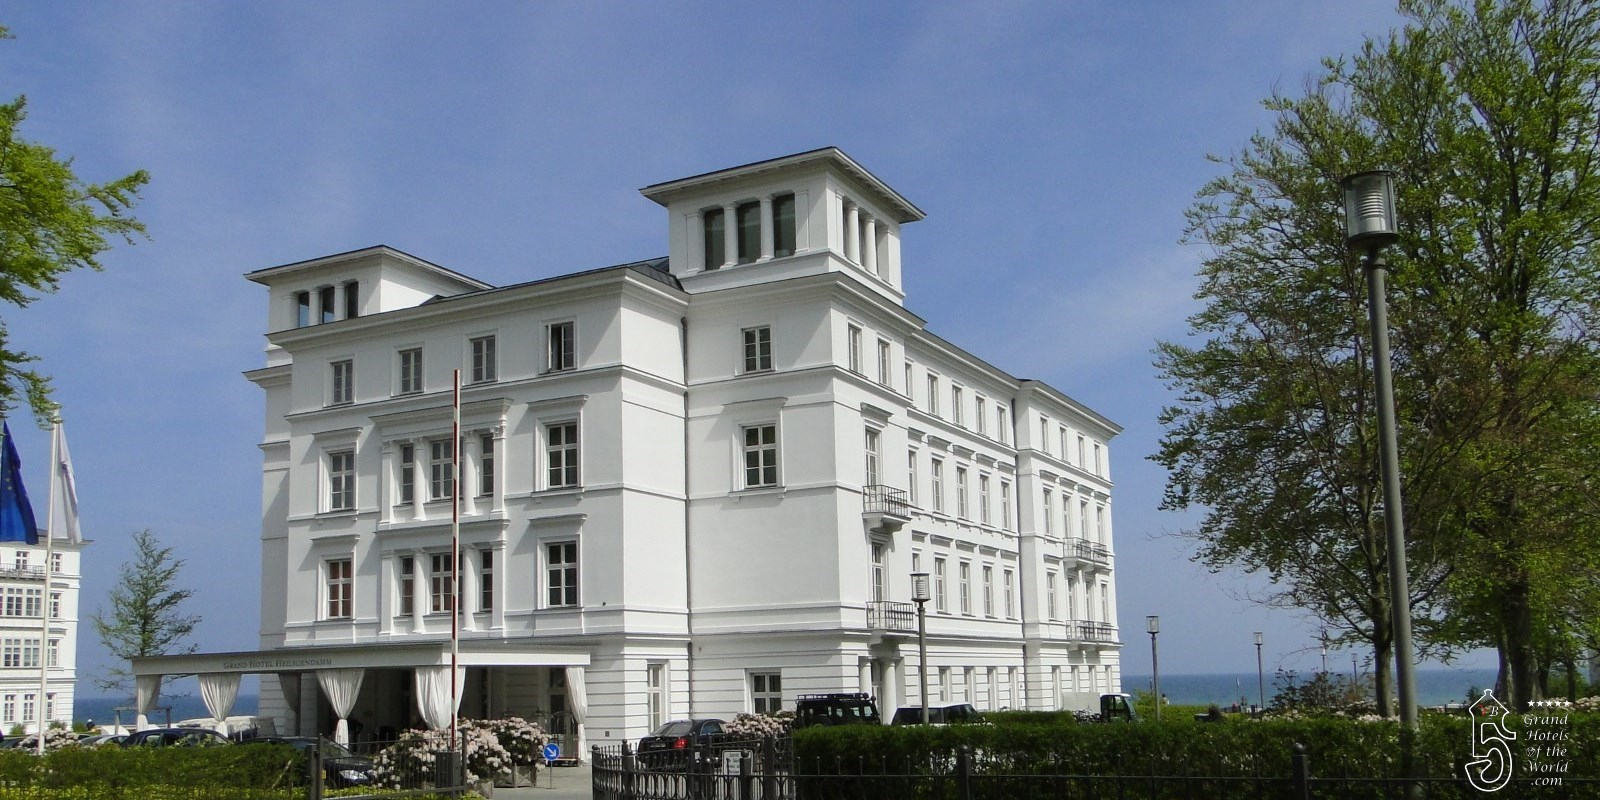 Grand Hotel Heiligendamm in Heiligendamm